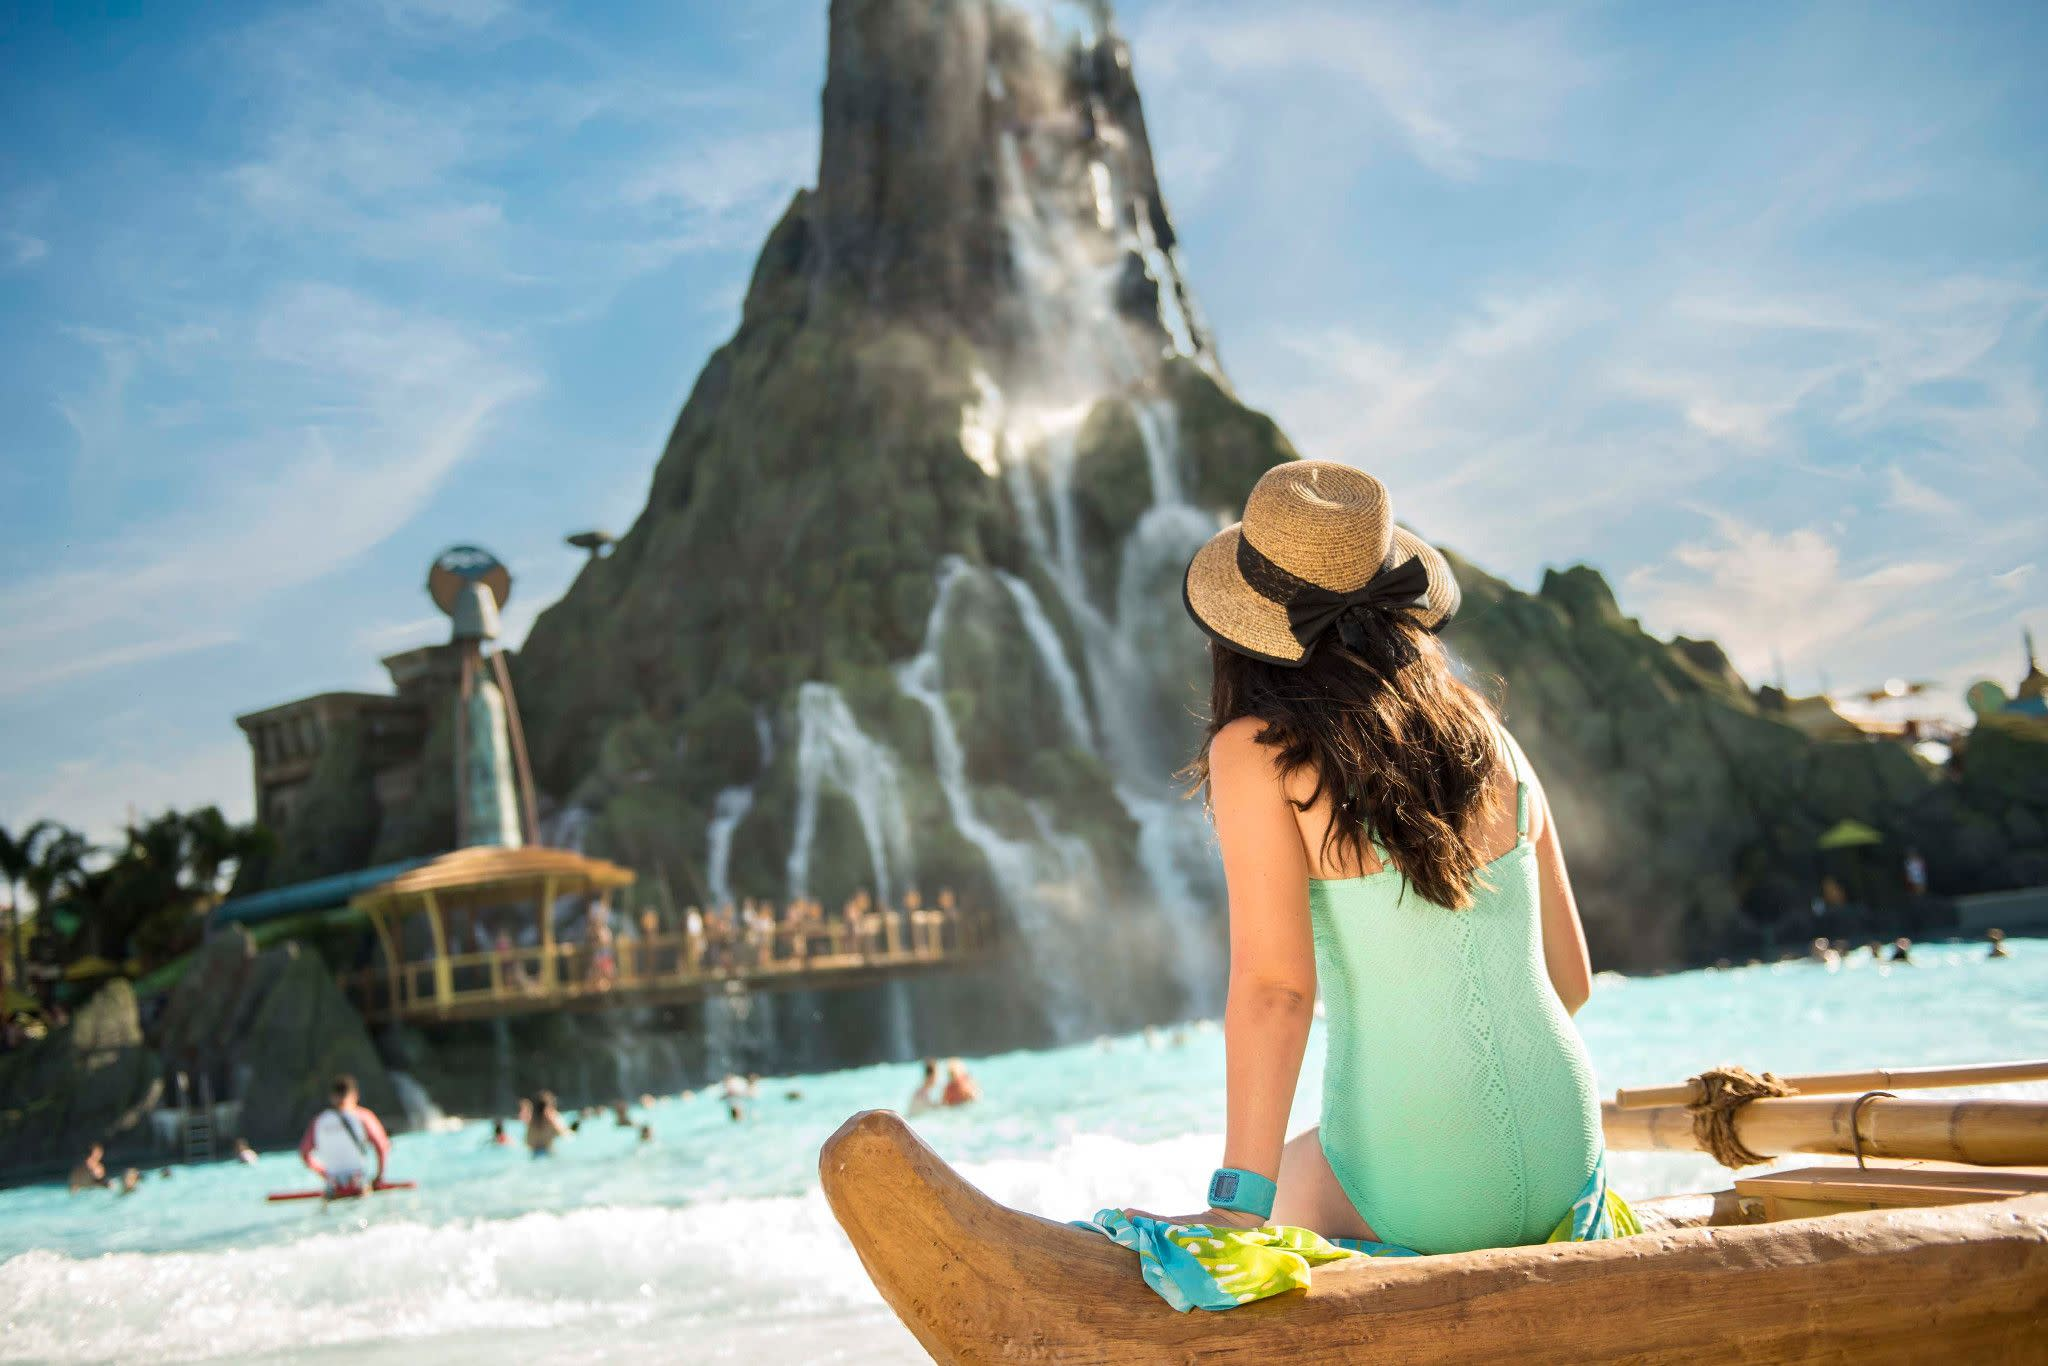 Universal's Volcano Bay Water Theme Park in Orlando